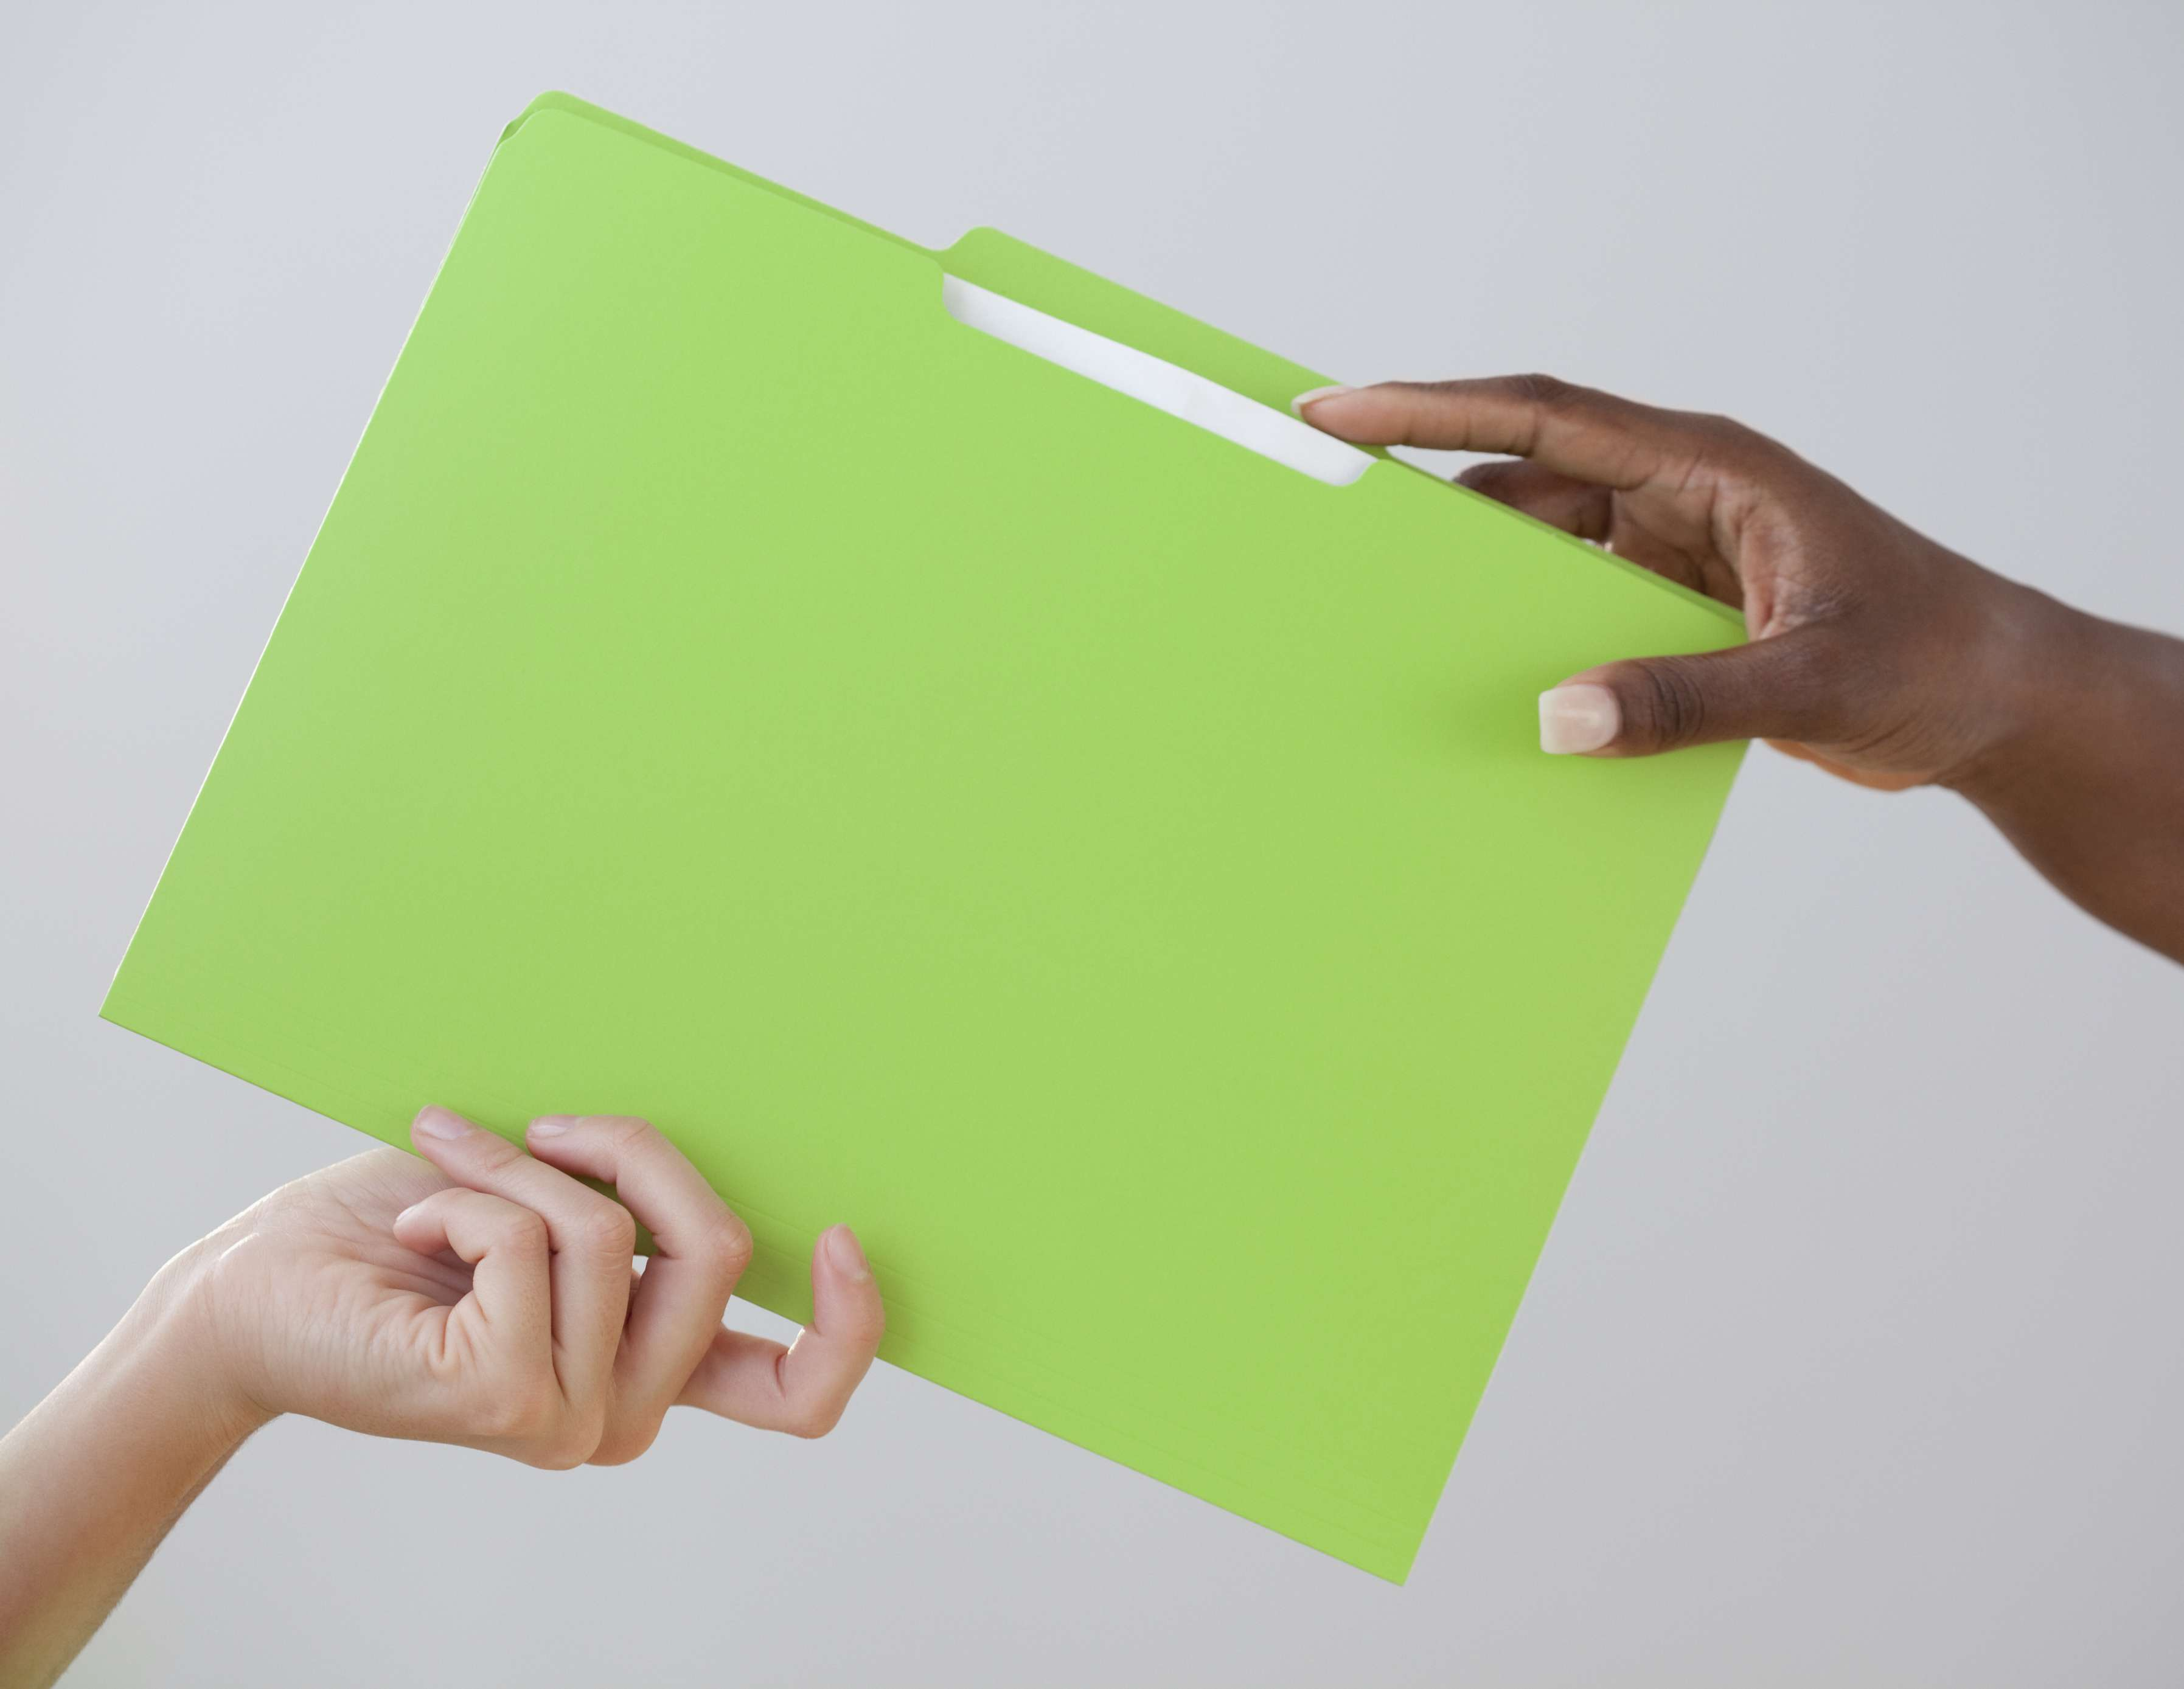 Hand passing a folder to another person's hand